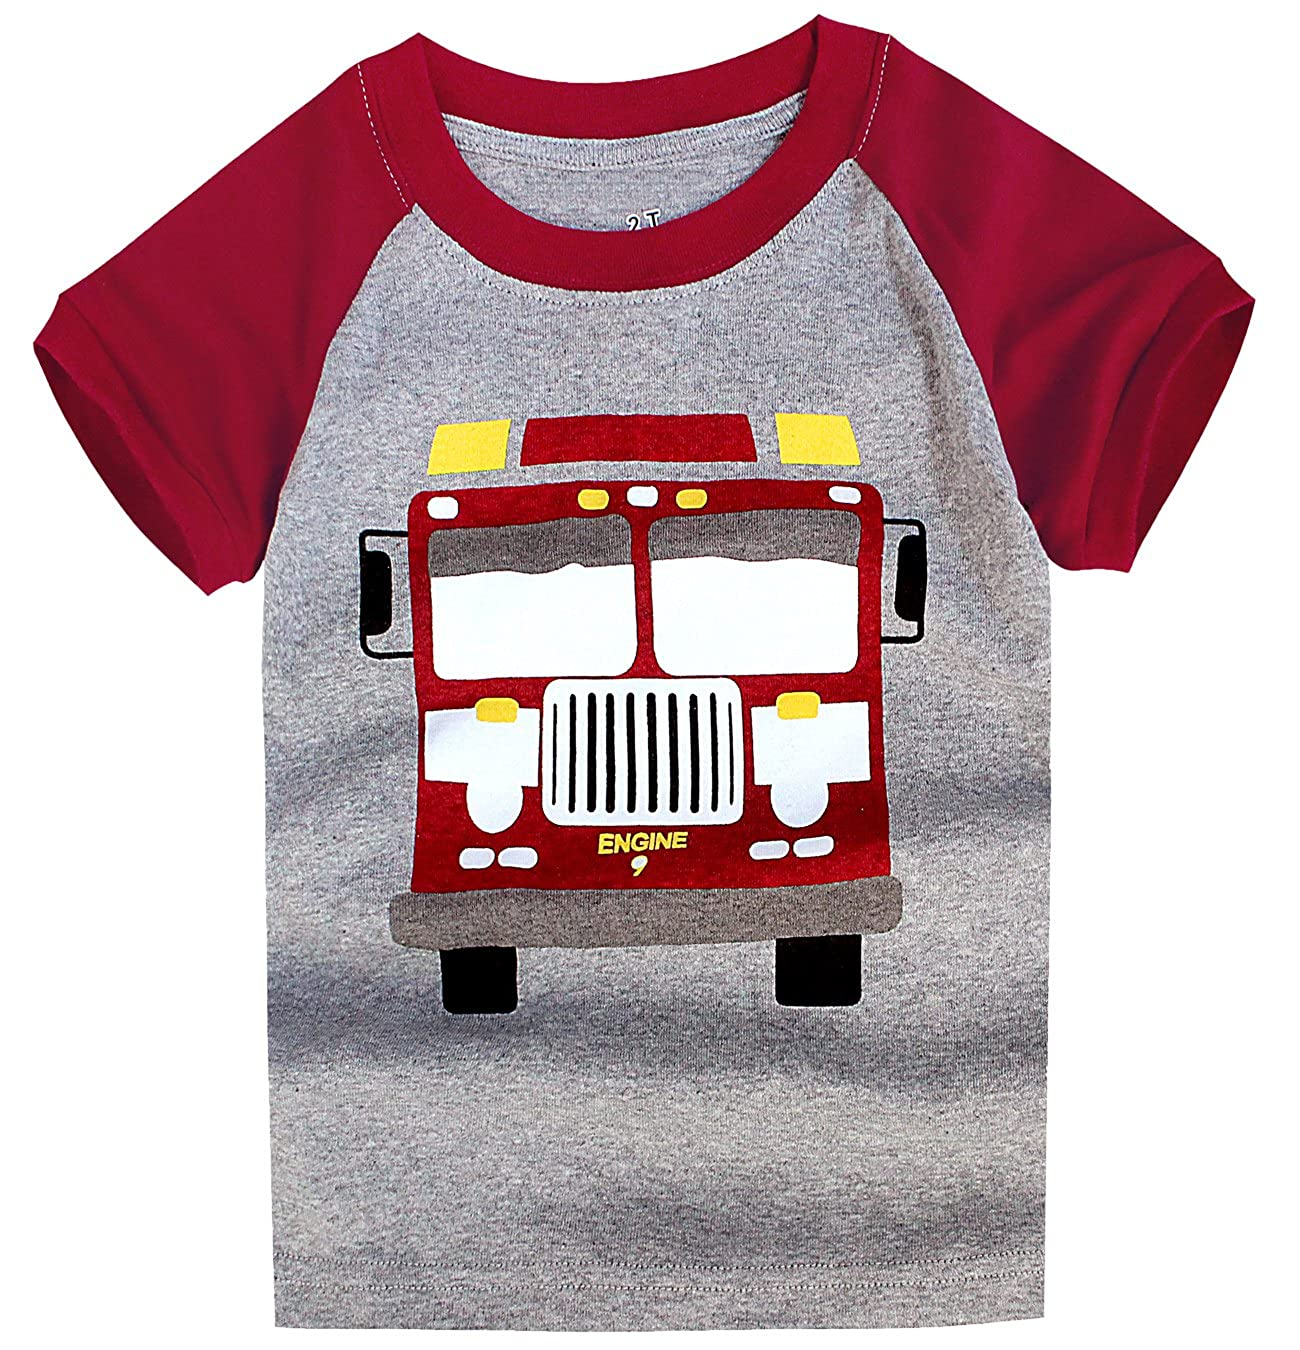 Little Boys Short Sleeve Fire Truck Tee Cotton Toddler/Infant Kids Casual T-Shirt